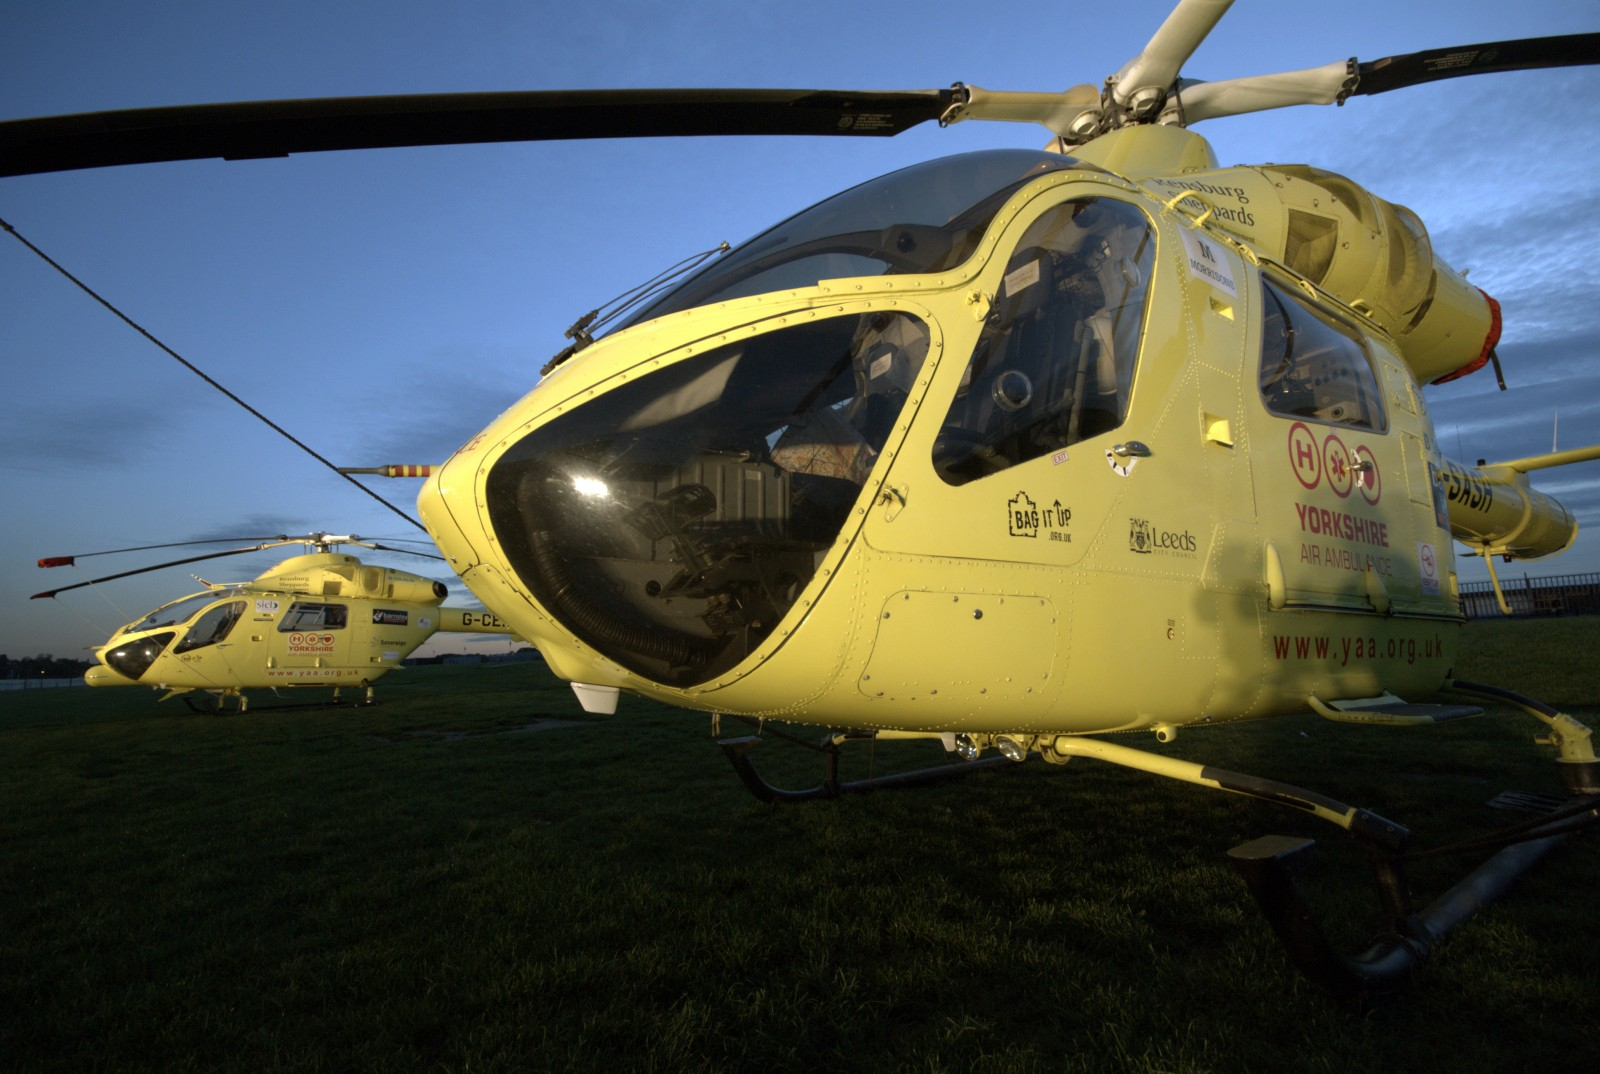 yorkshire air ambulance helicopter event photography